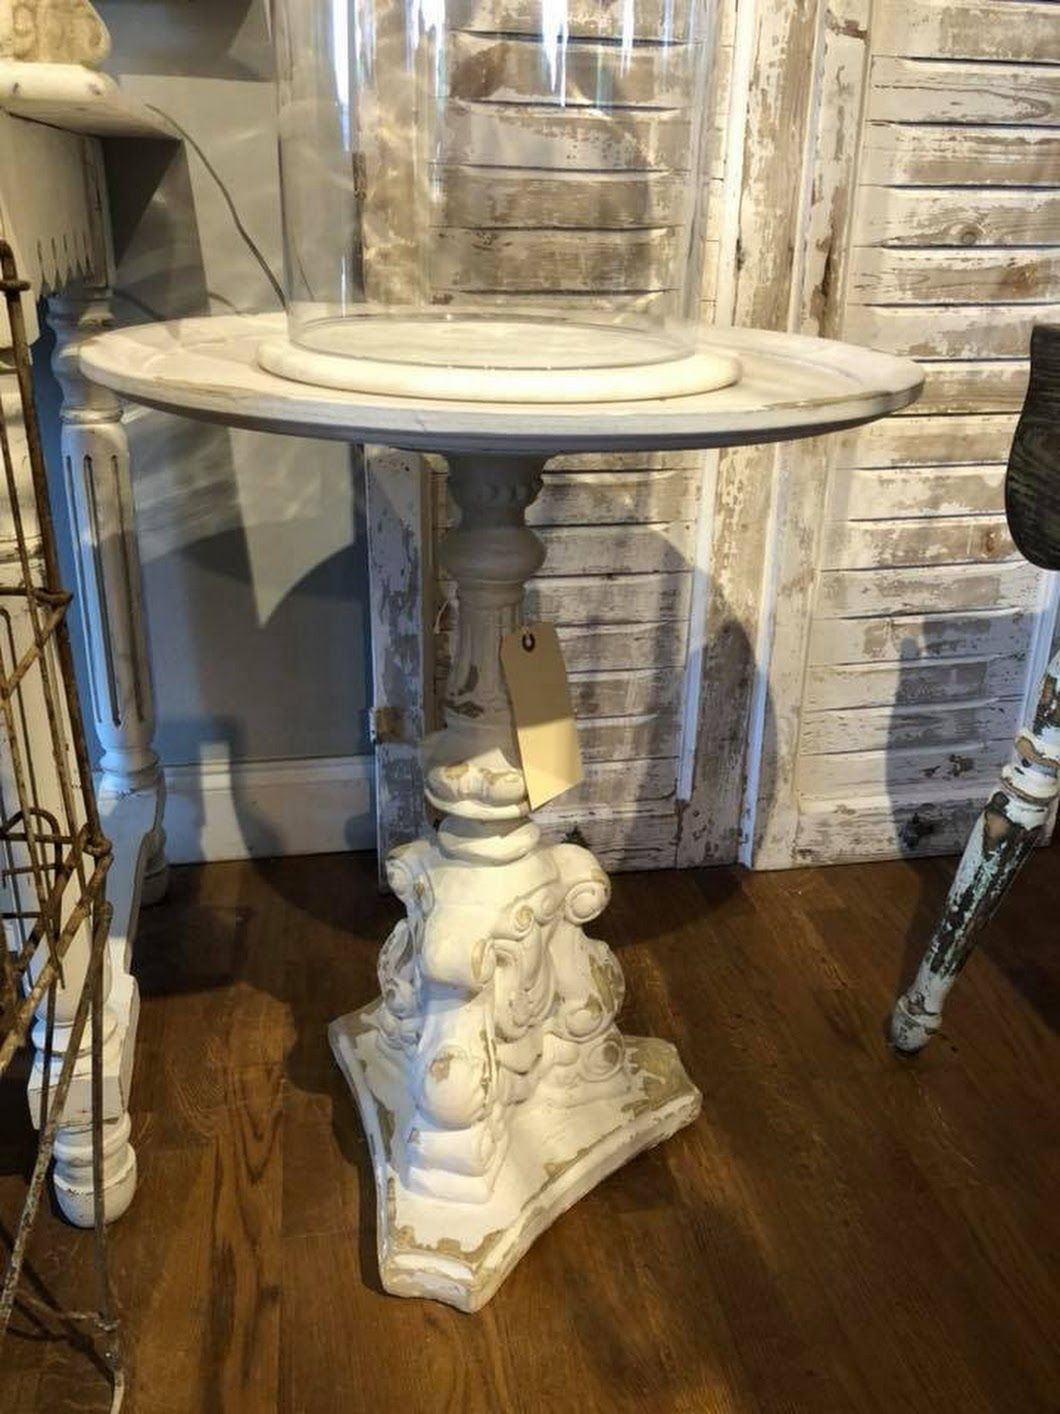 Antique Furniture and Decor Ballard & Blakely Hours: Tuesday - Saturday  10:00 a.m. to 5:00 p.m. 5021 West Lovers Lane Dallas, Texas 75209 - Antique Furniture And Decor Ballard & Blakely Hours: Tuesday